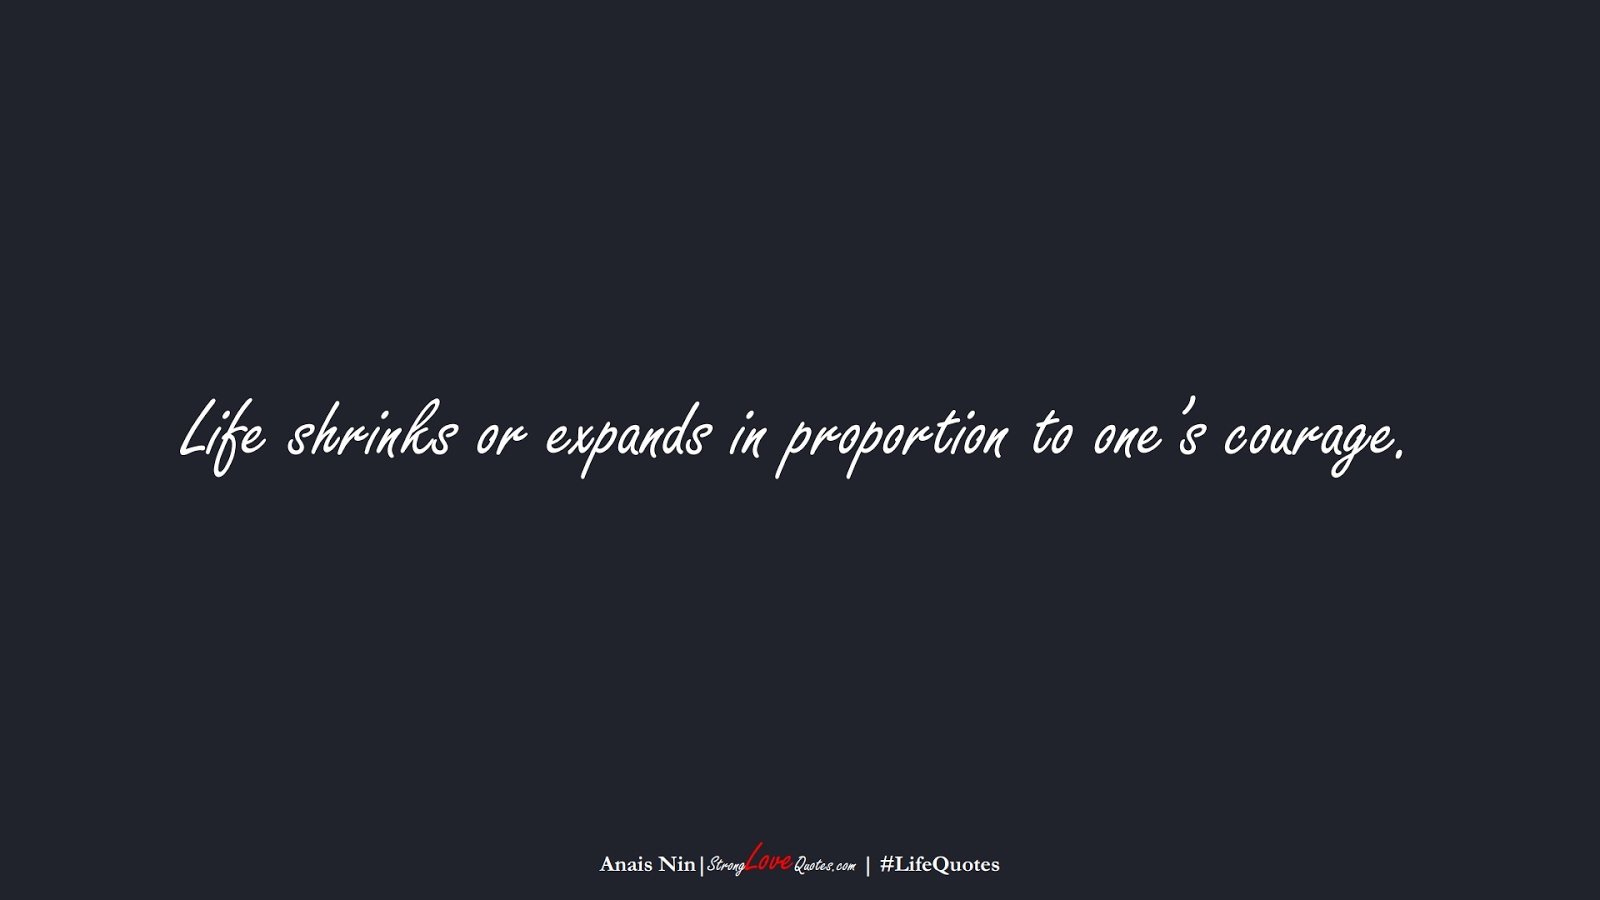 Life shrinks or expands in proportion to one's courage. (Anais Nin);  #LifeQuotes